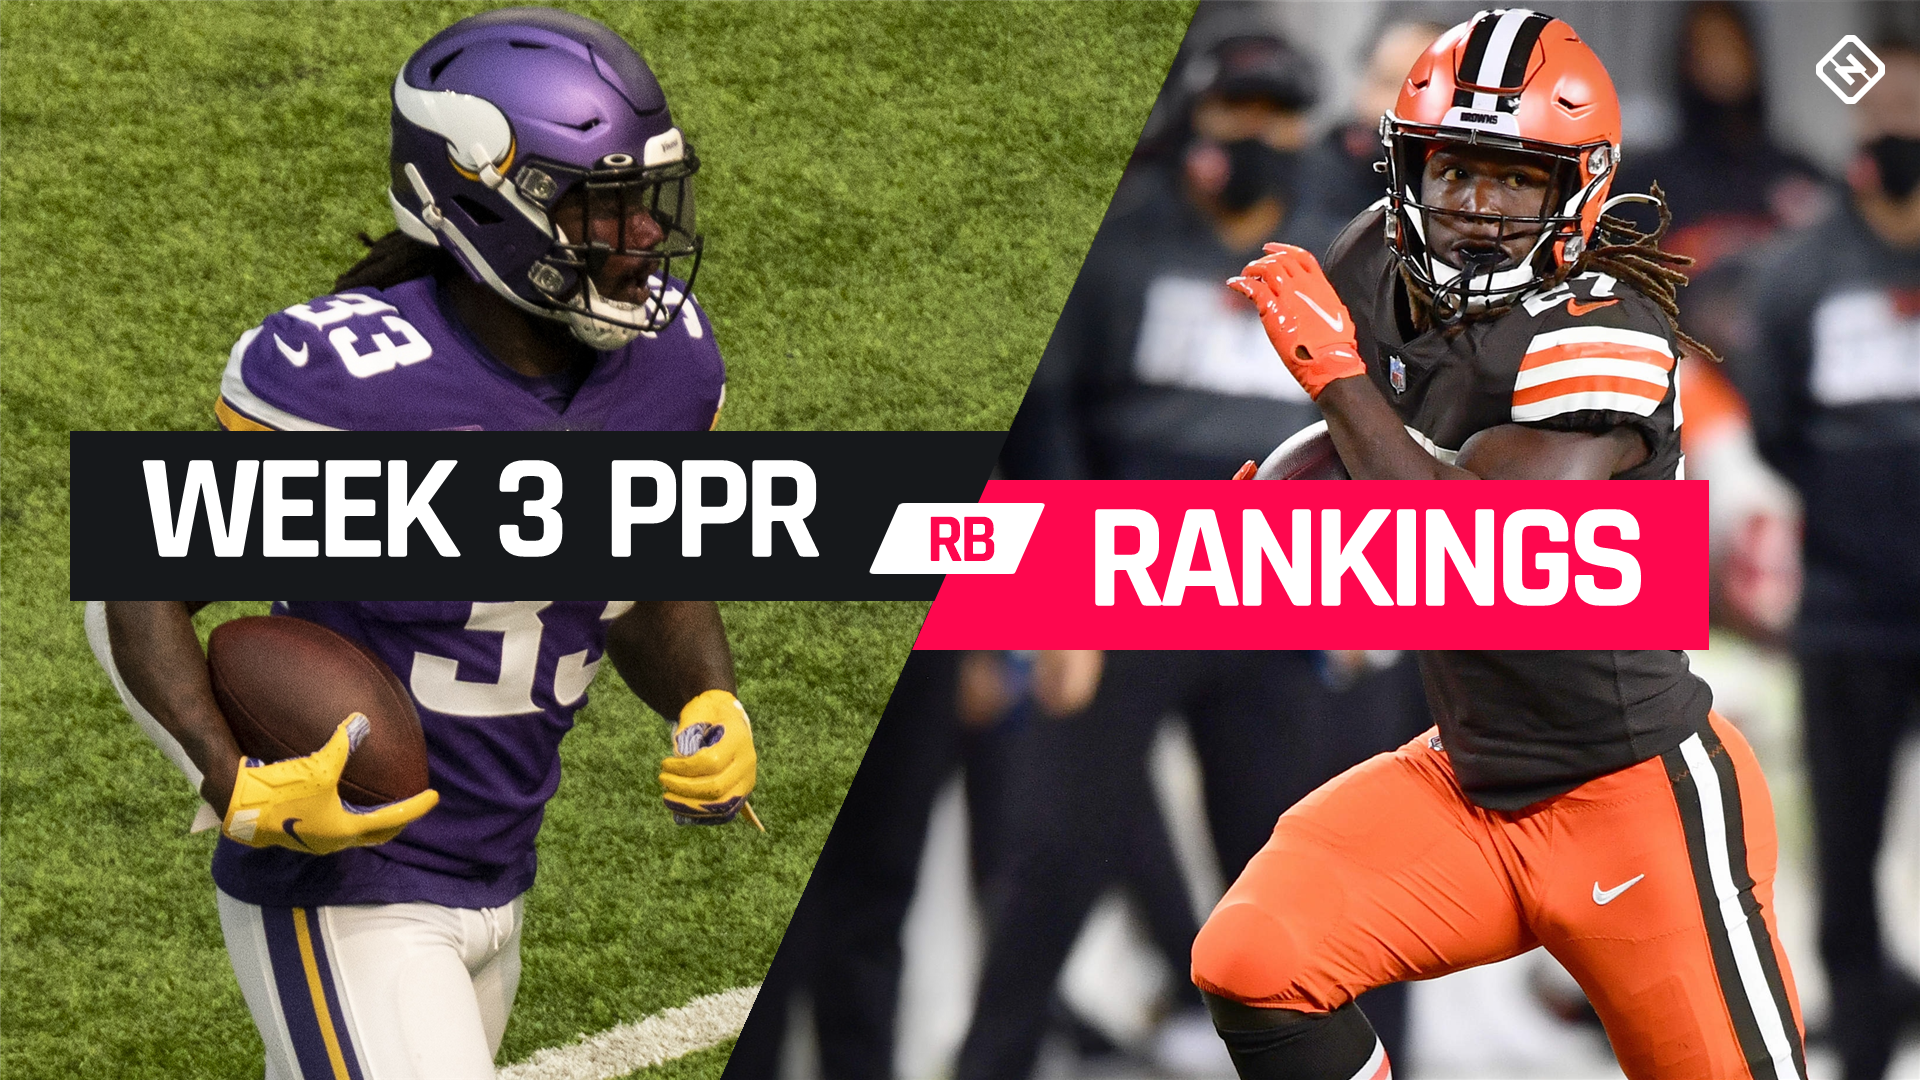 Week 3 Fantasy RB PPR Rankings: Must-starts, sleepers, potential busts